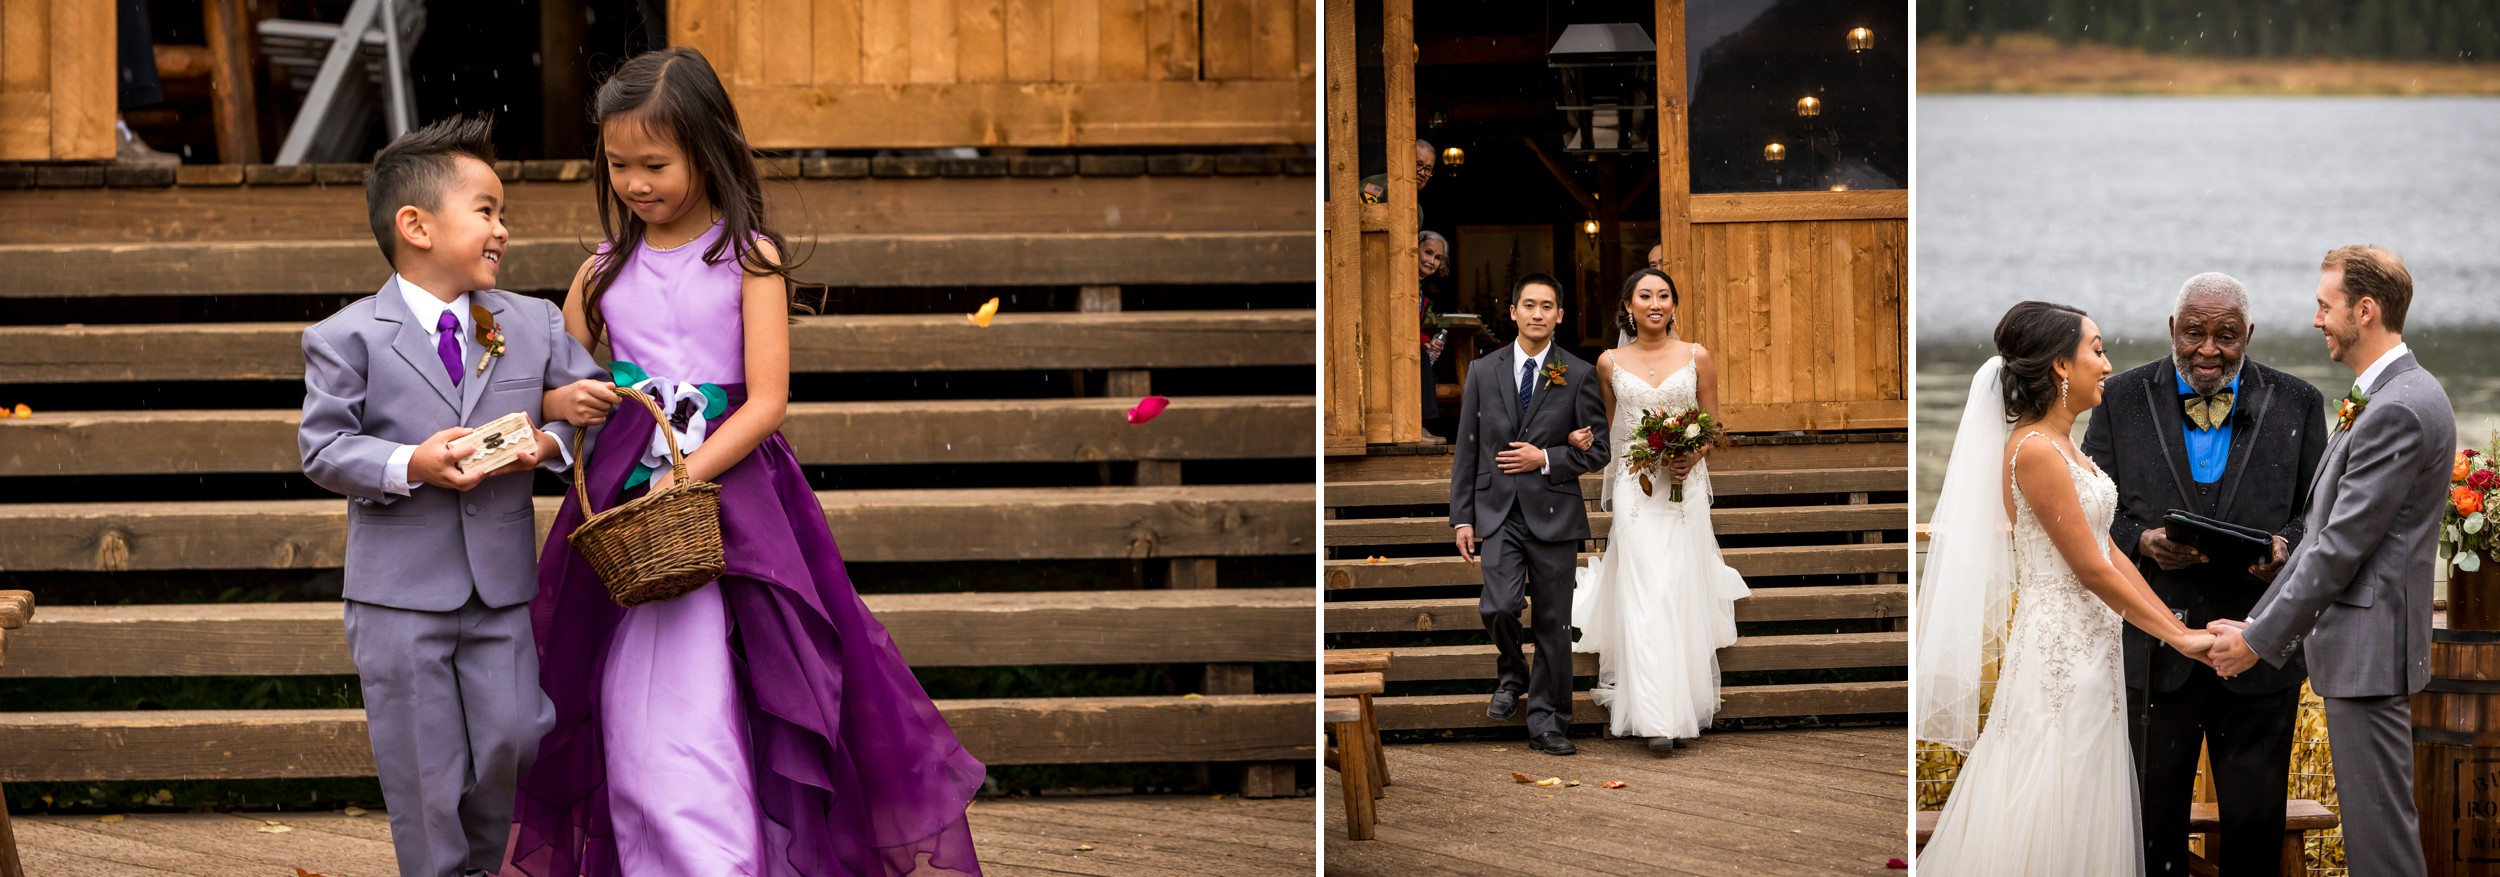 Piney_River_Ranch_Vail_Wedding_Photographer_Kristopher_Lindsay_ 12.jpg